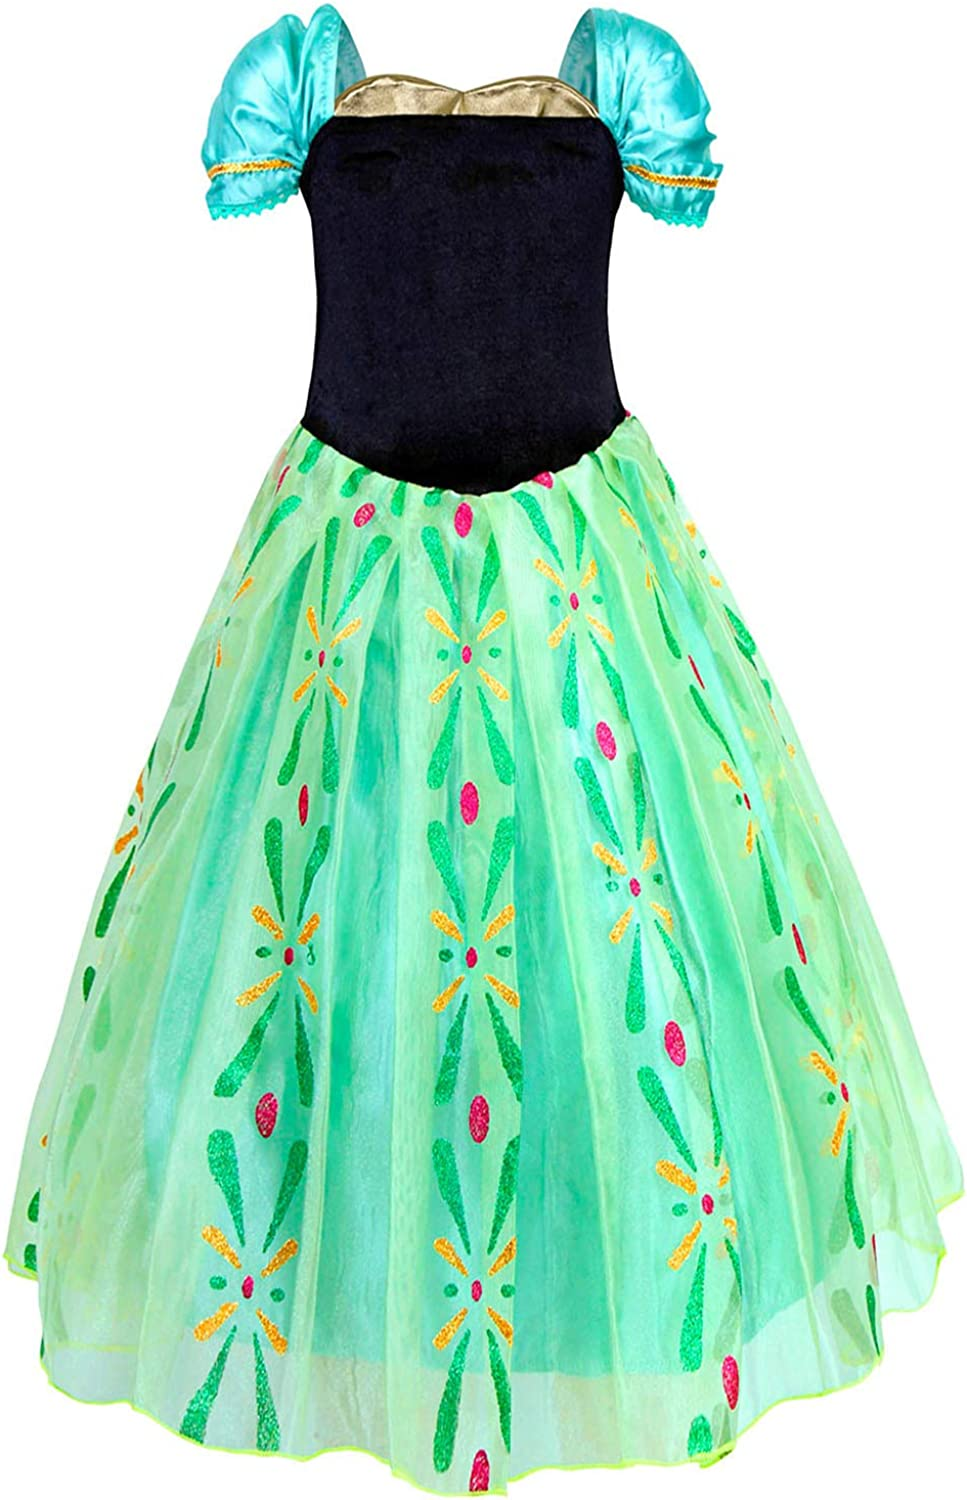 HenzWorld Princess Costume Dress Birthday Party Queen Role Cosplay Outfits Jewelry Accessory Green Little Girls